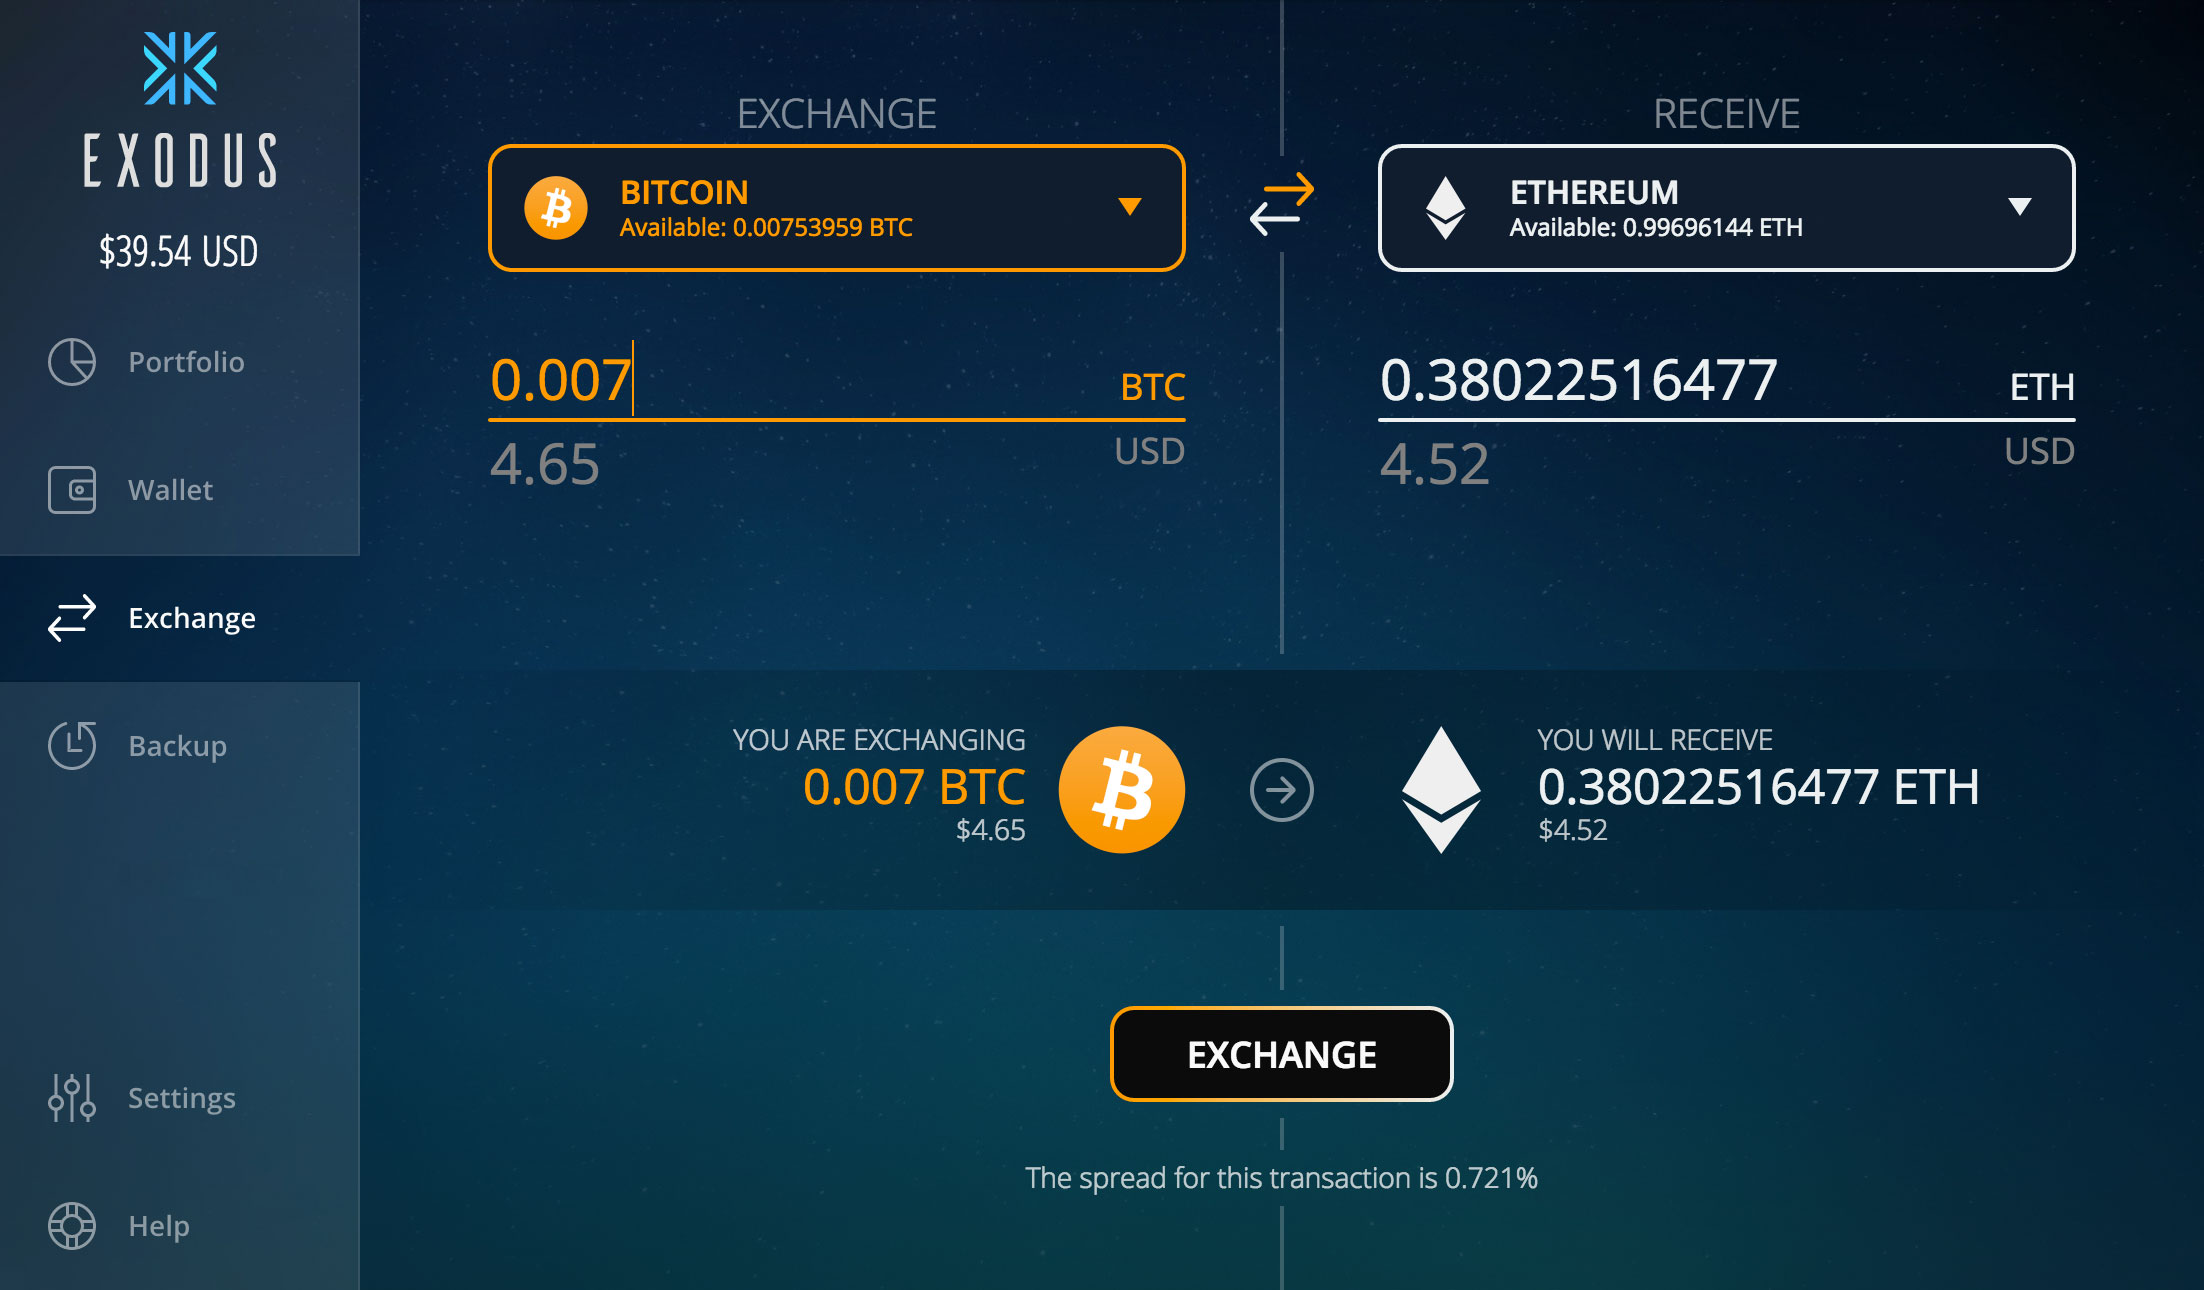 The Exodus Exchange, a slick implementation of Shapeshift directly in the app.